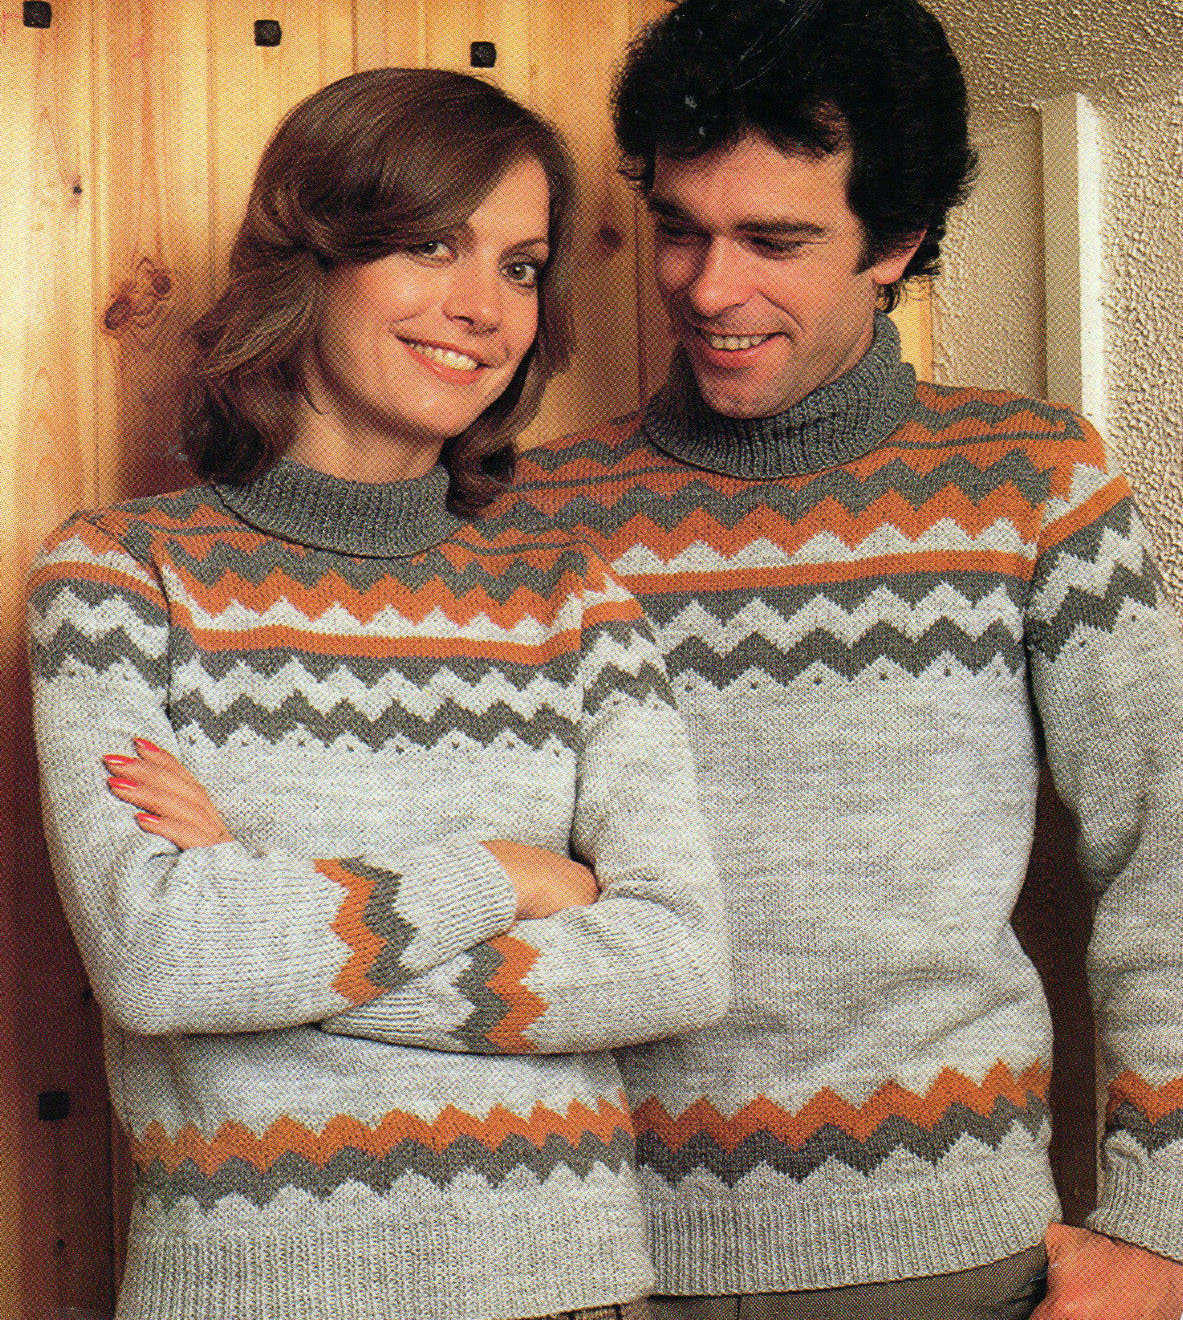 his-and-her-fashions-1